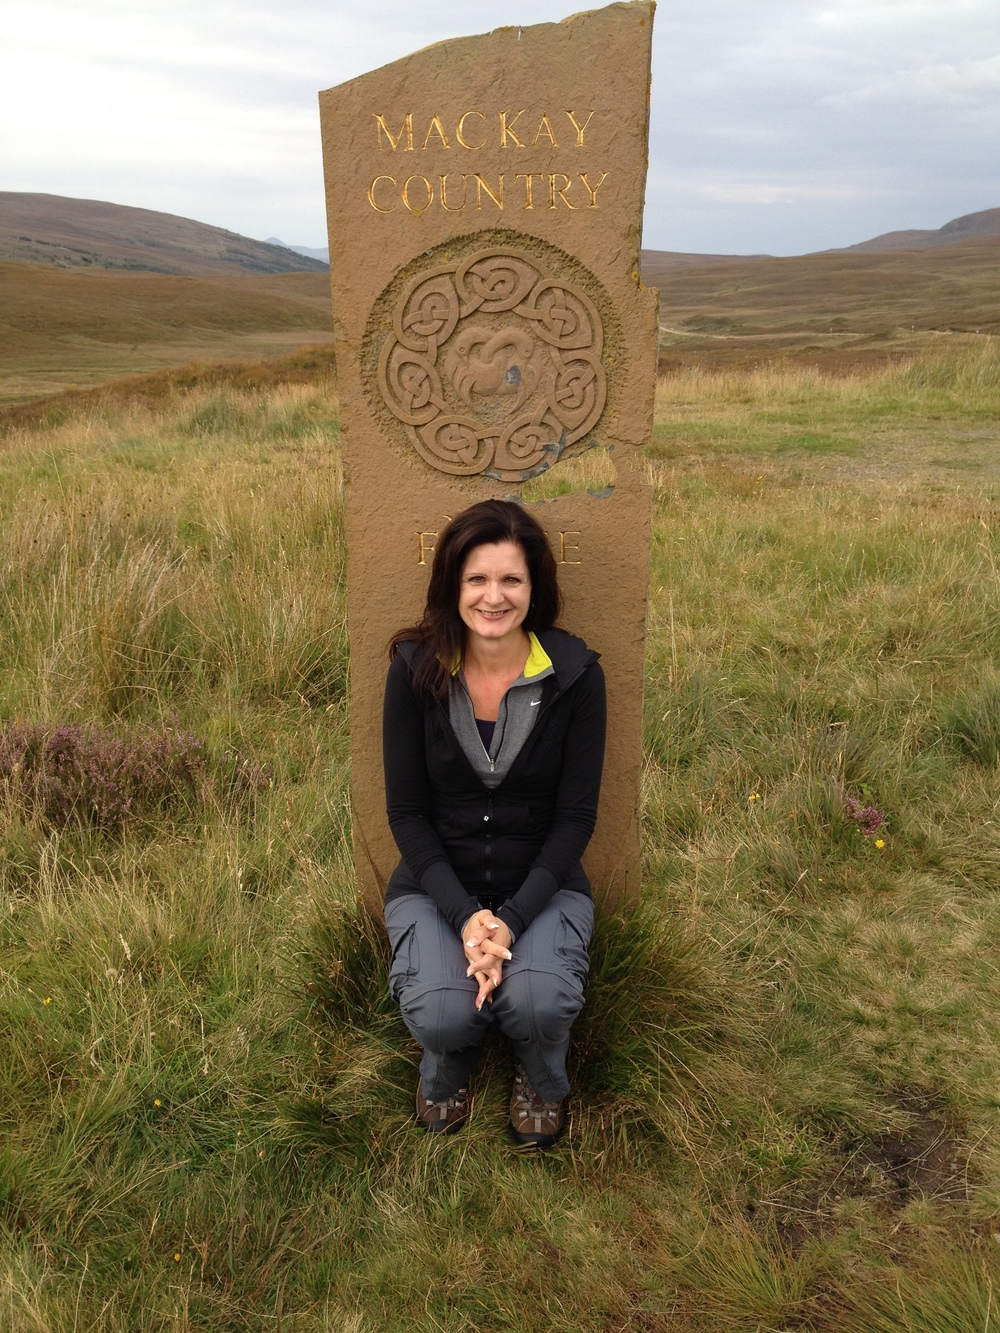 Theresa Mackay doing some ancestral tourism of her own in Scotland. Photo copyright and courtesy Theresa MacKay.